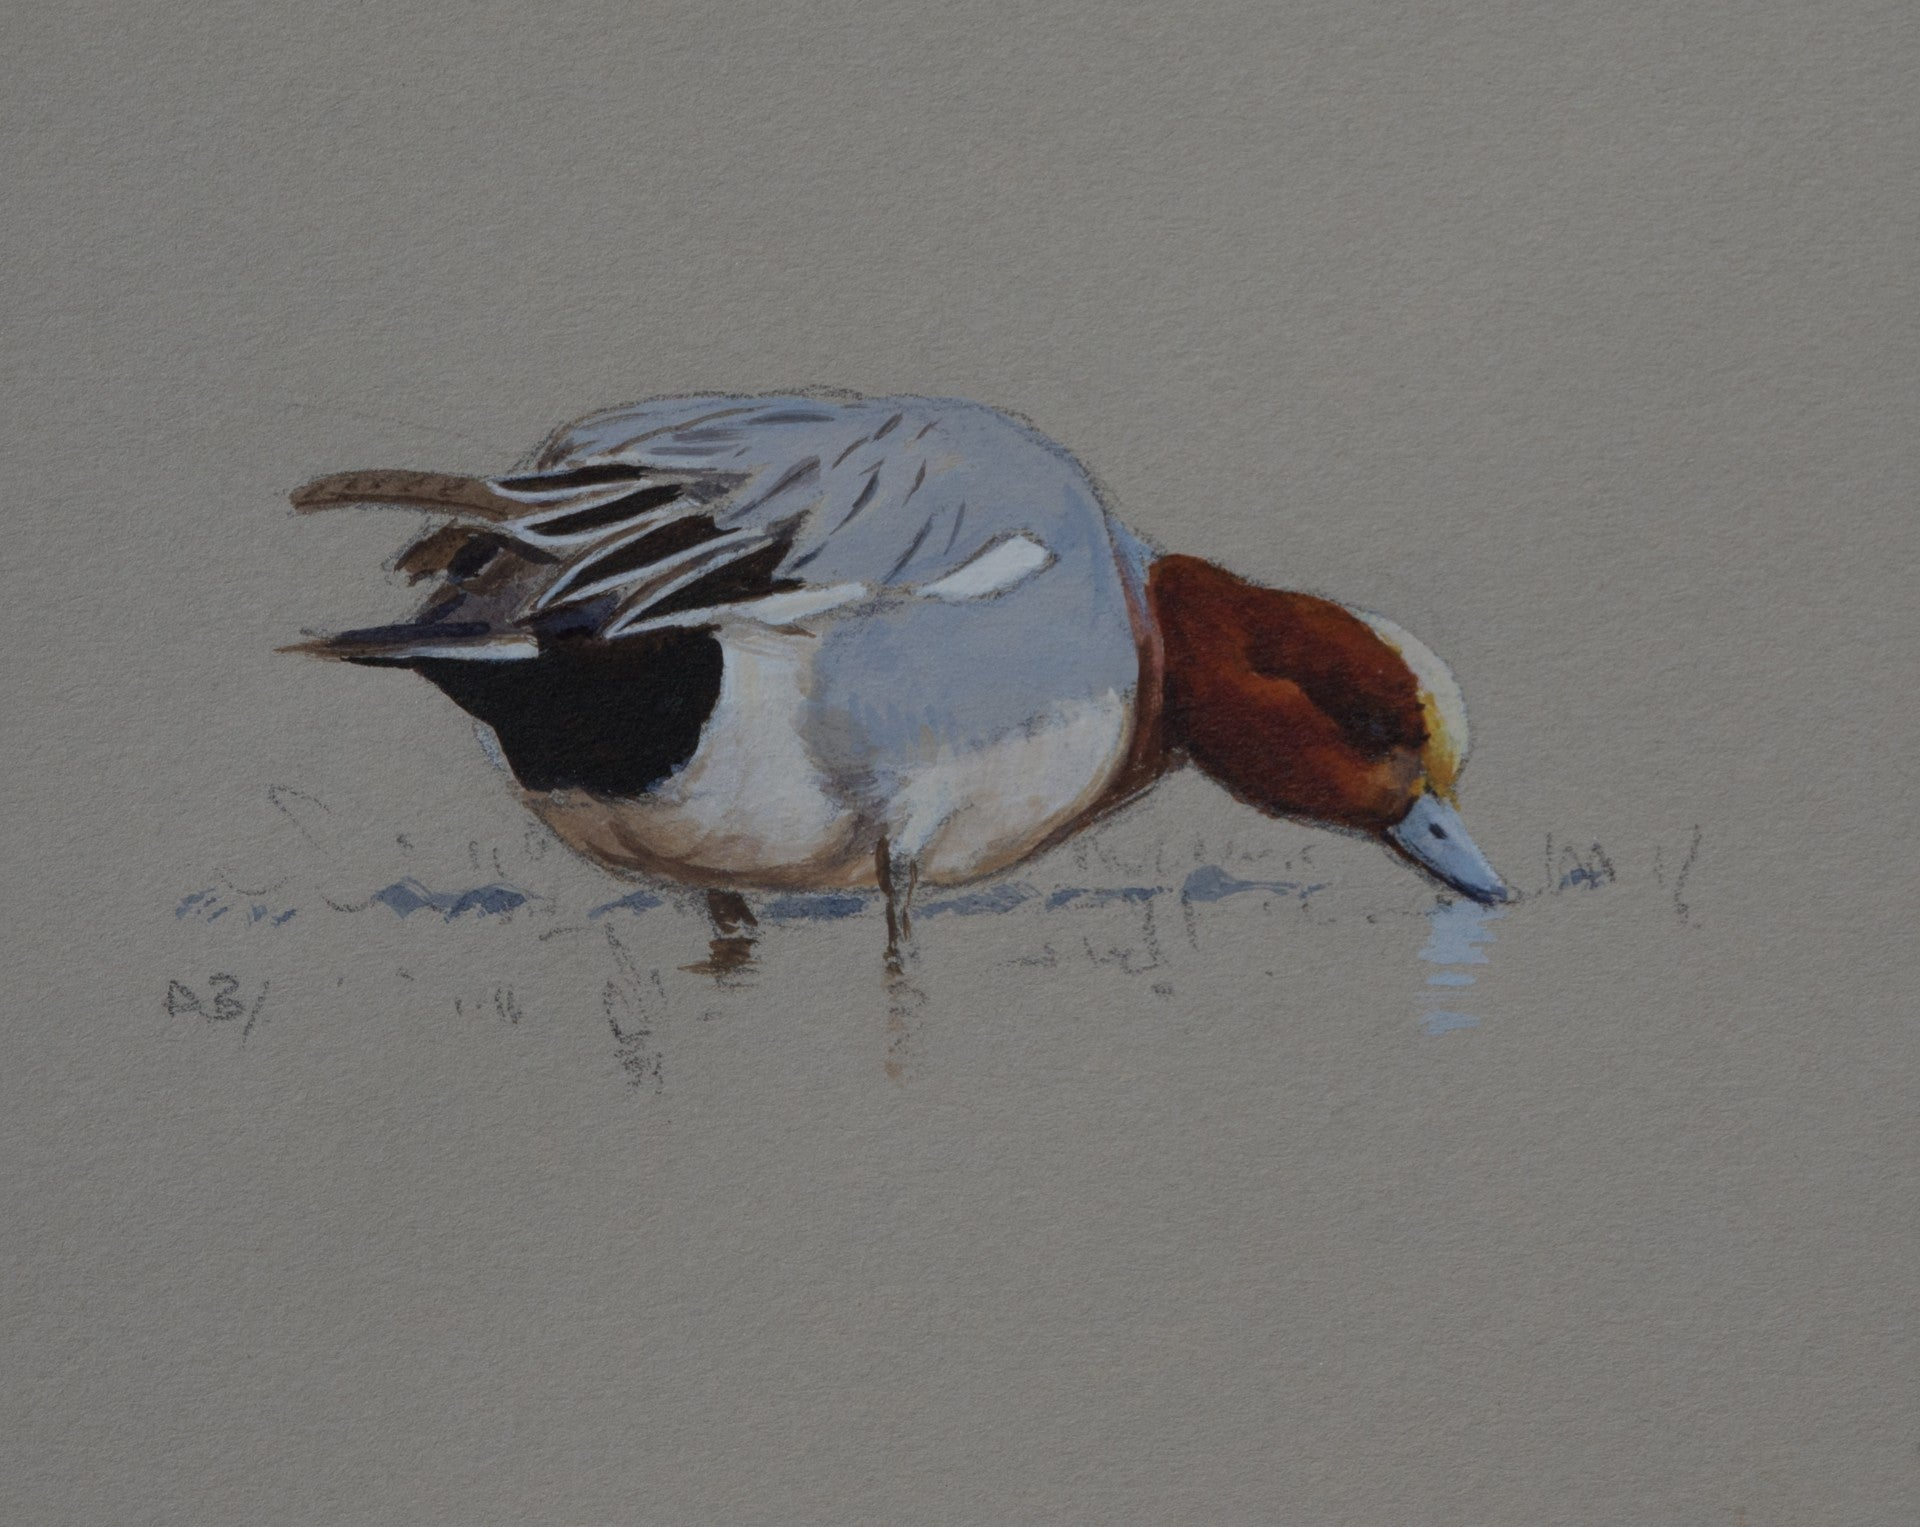 "'Drake Wigeon Sketch' Original watercolour by Ashley Boon - 4.75"" x 6"""